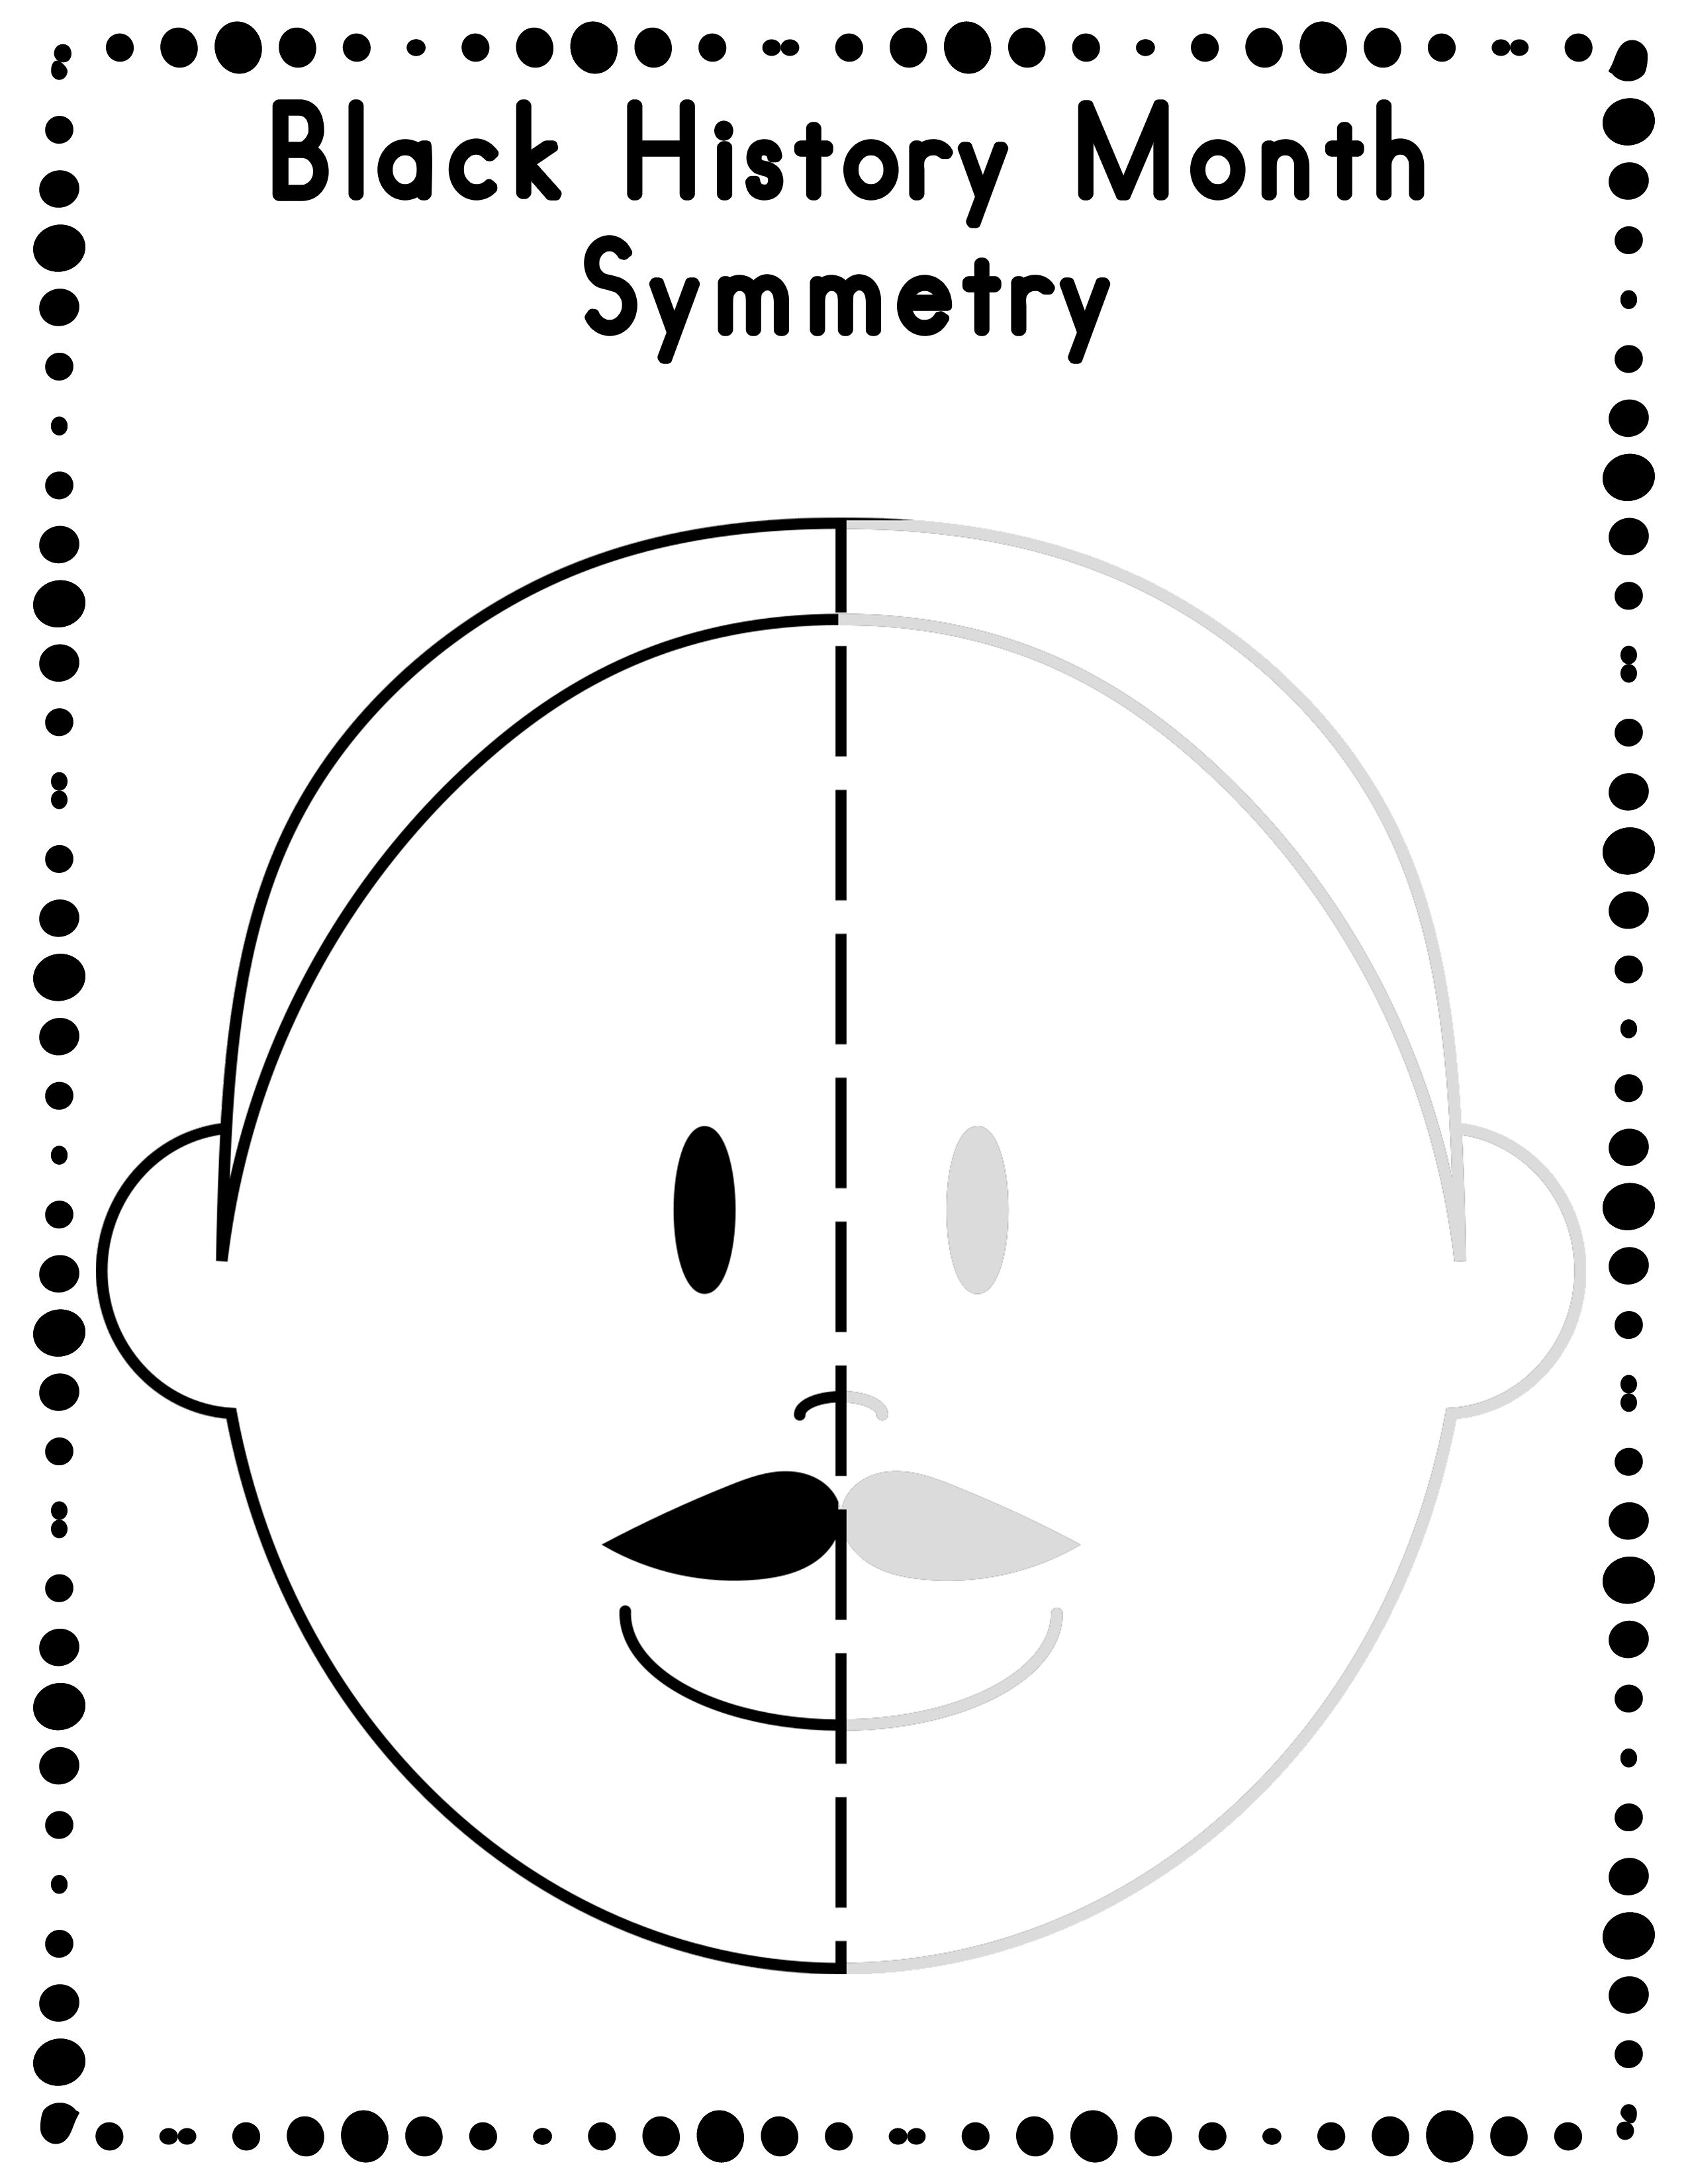 Black History Month Symmetry Drawing Activity For Art And